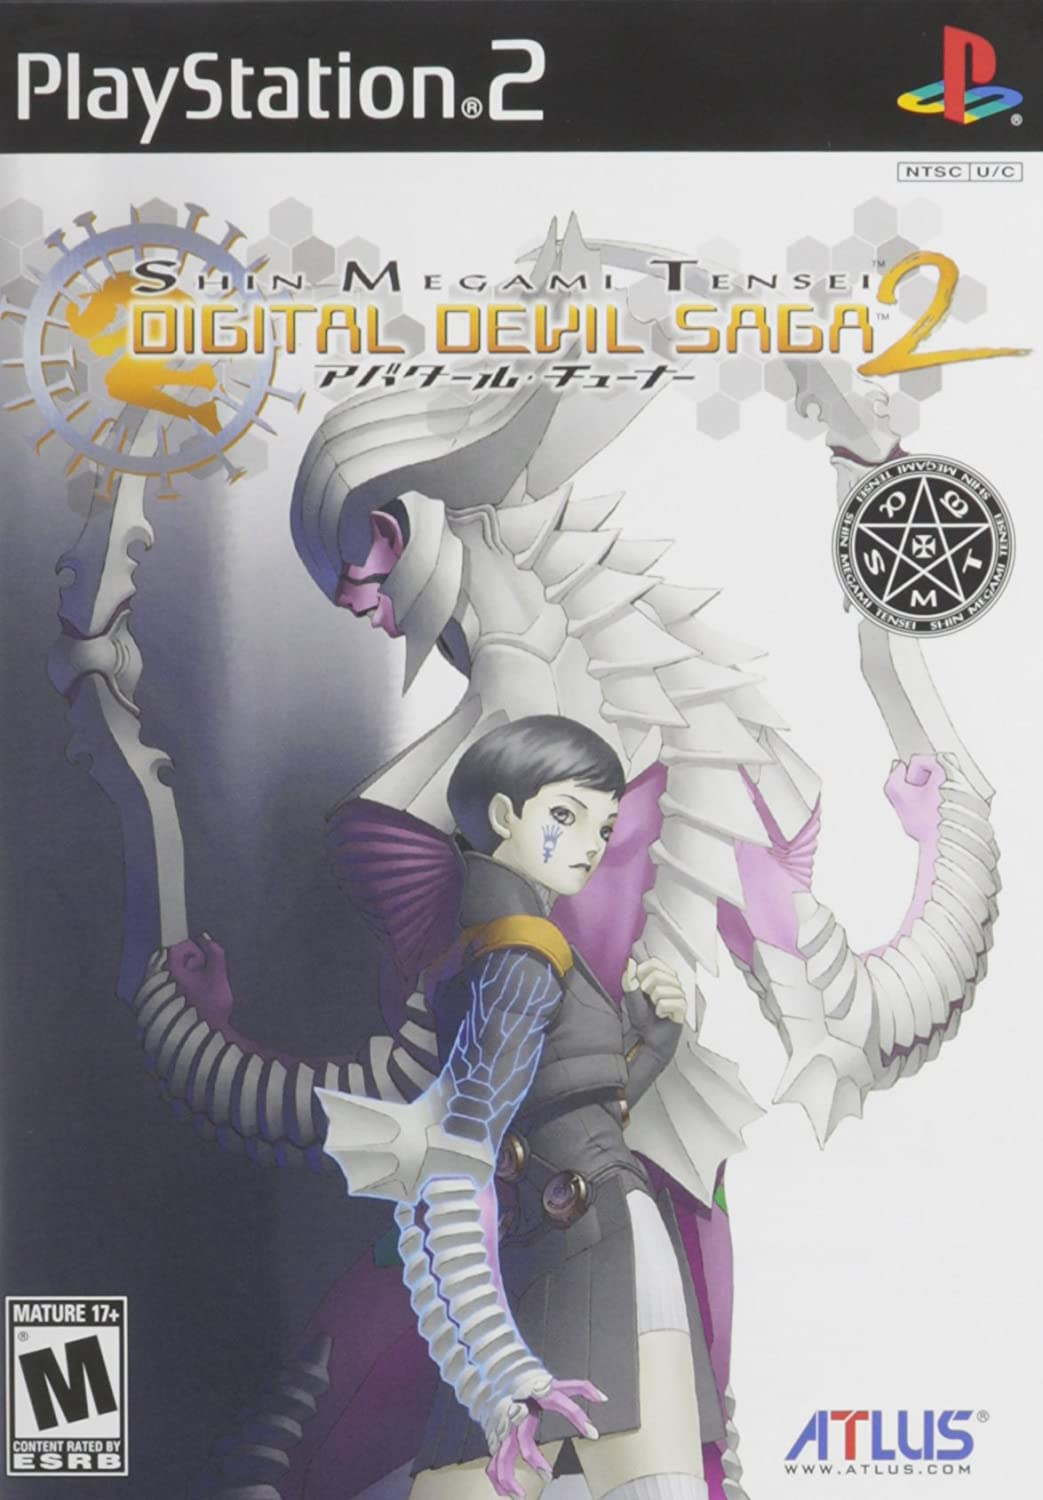 Shin Megami Tensei Digital Devil Saga 2 - PlayStation 2